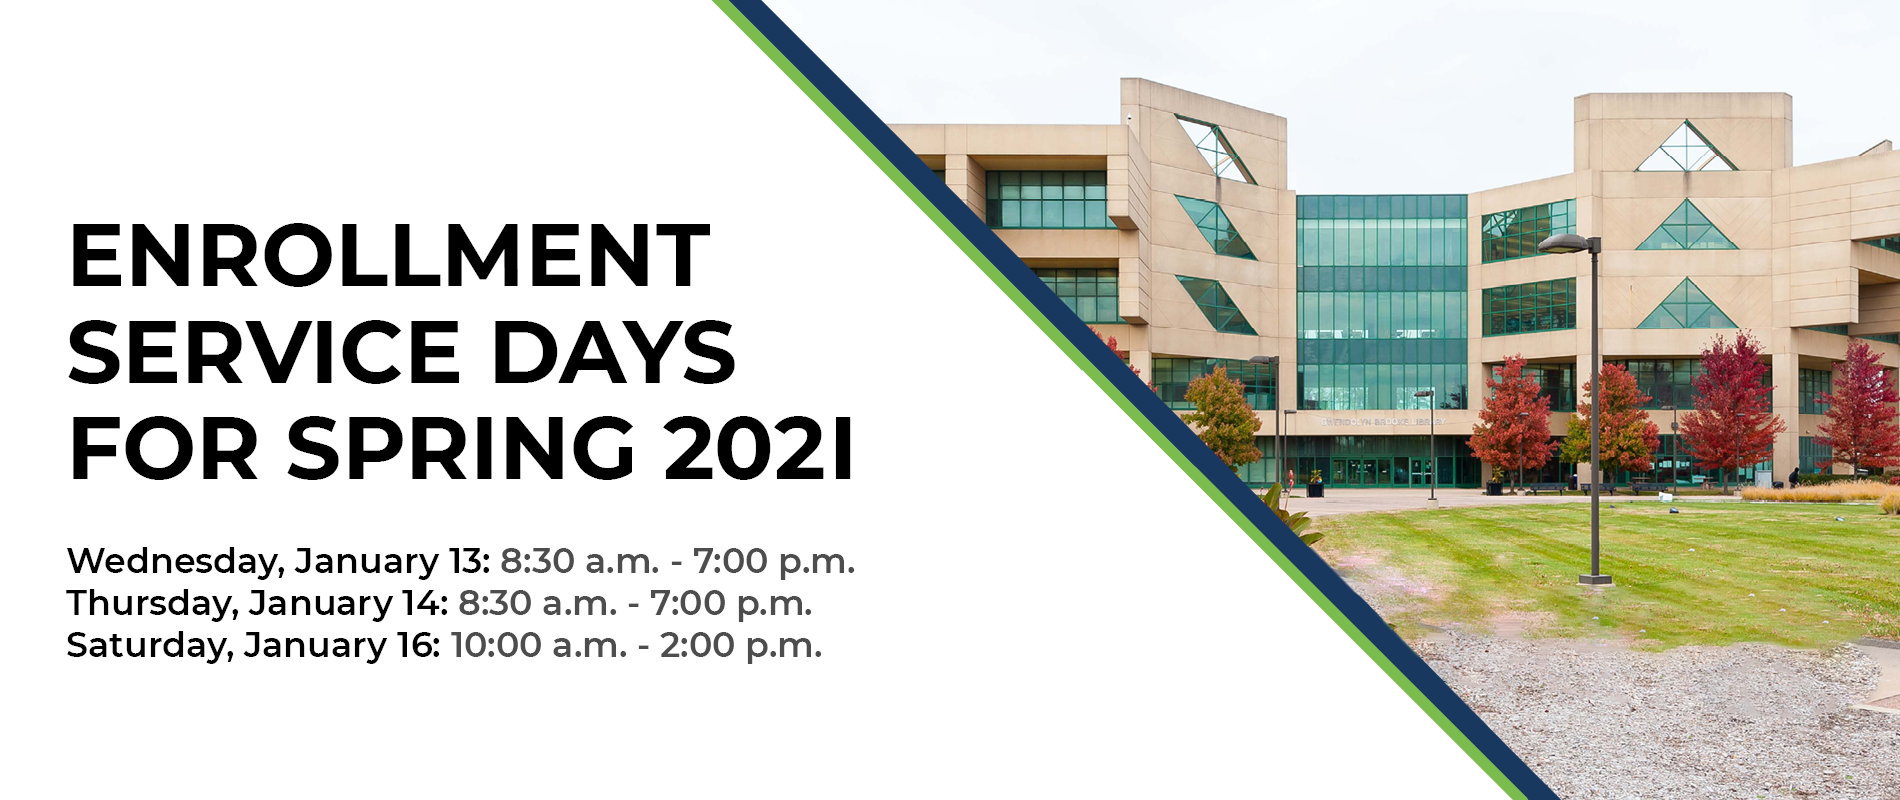 Enrollment Service Days Banner